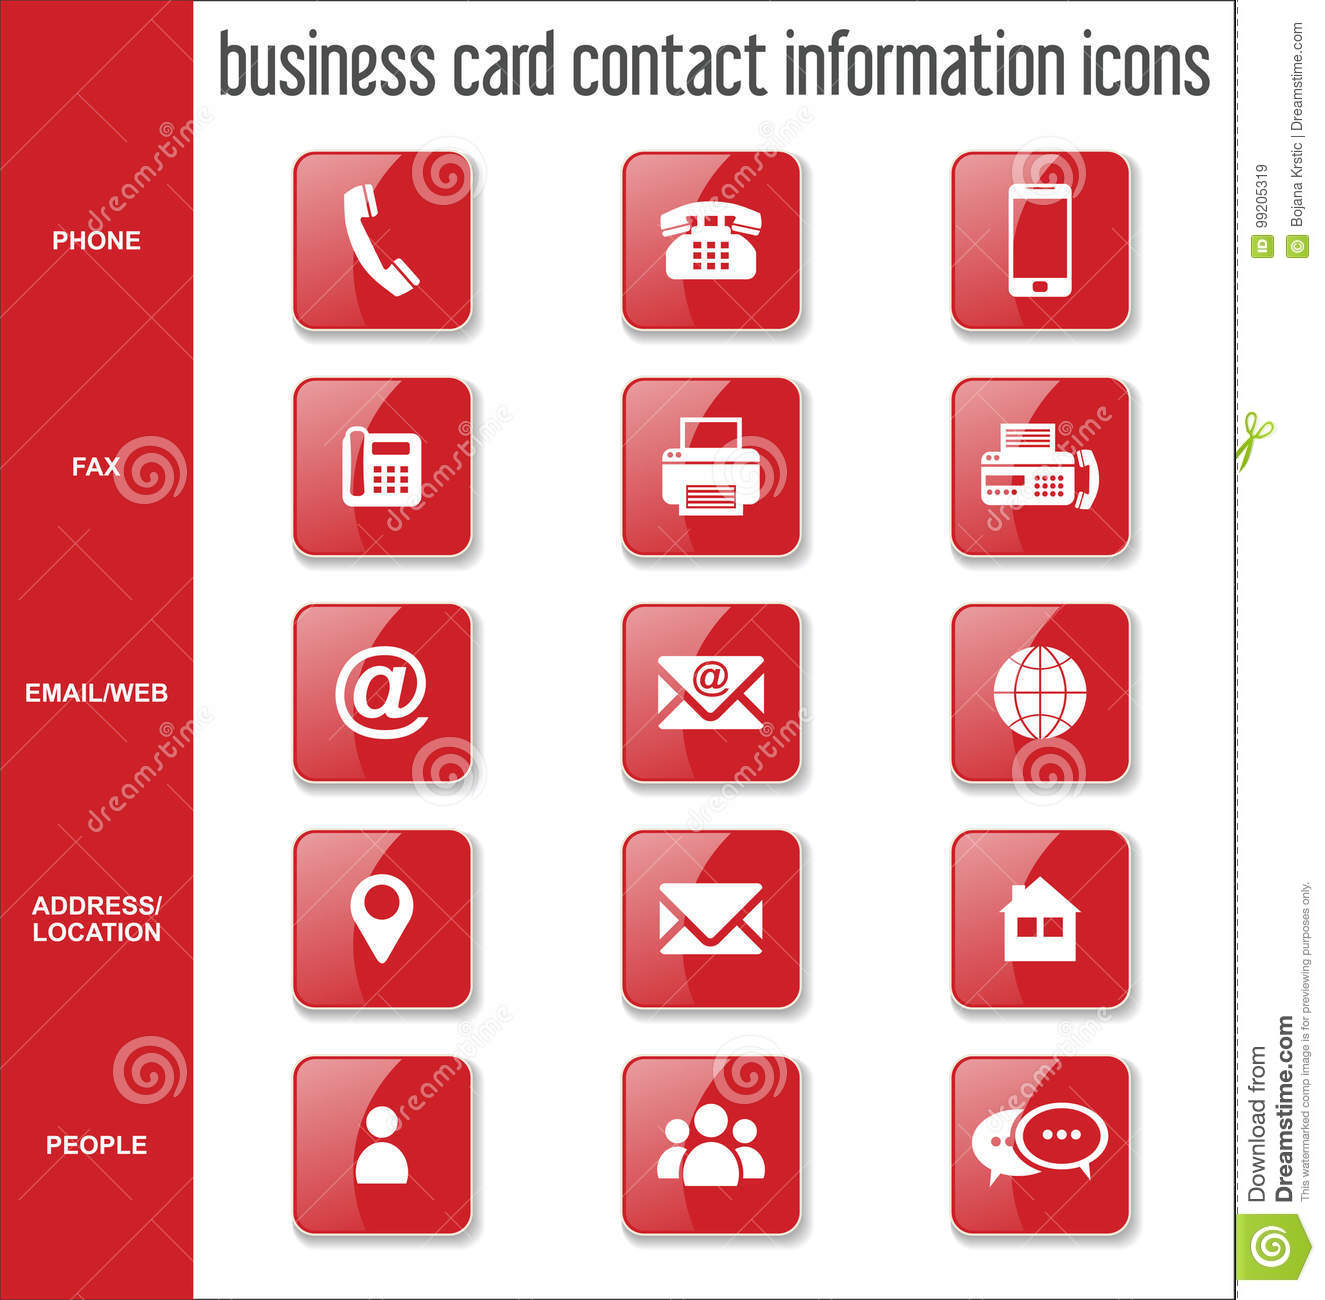 Collection D Icones De L Information Contact Carte Visite Professionnelle